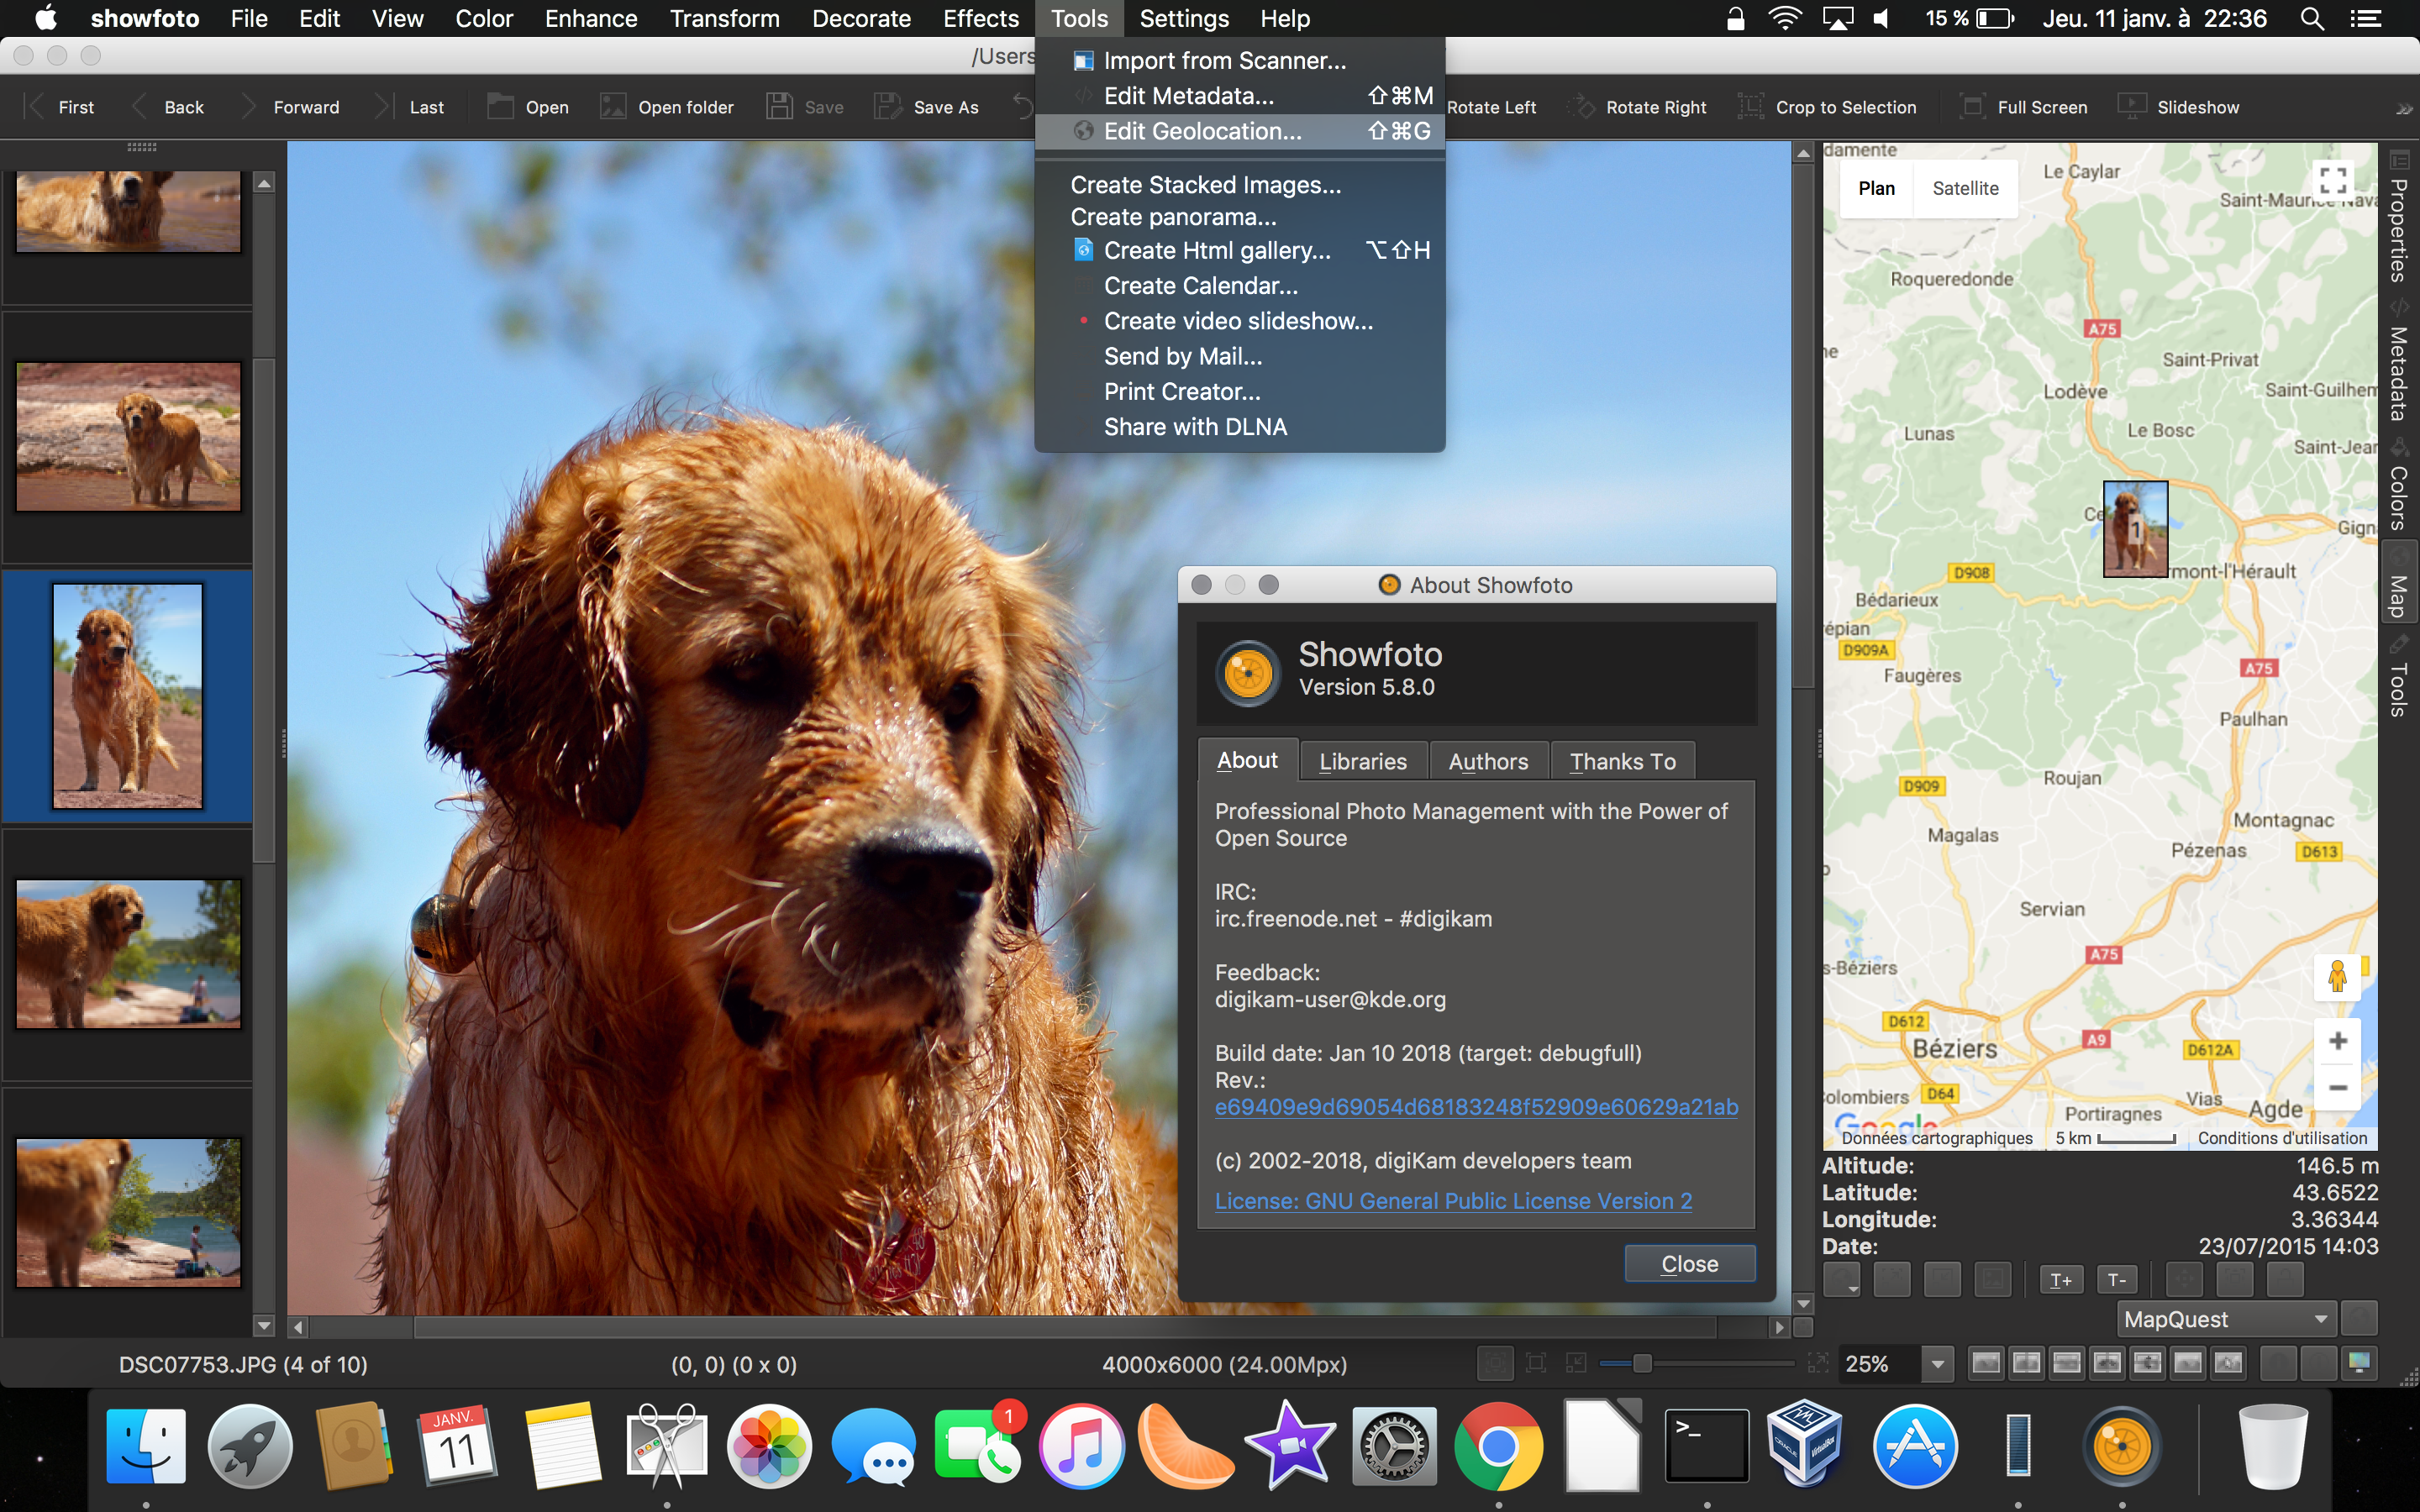 Showfoto Running Under MacOS